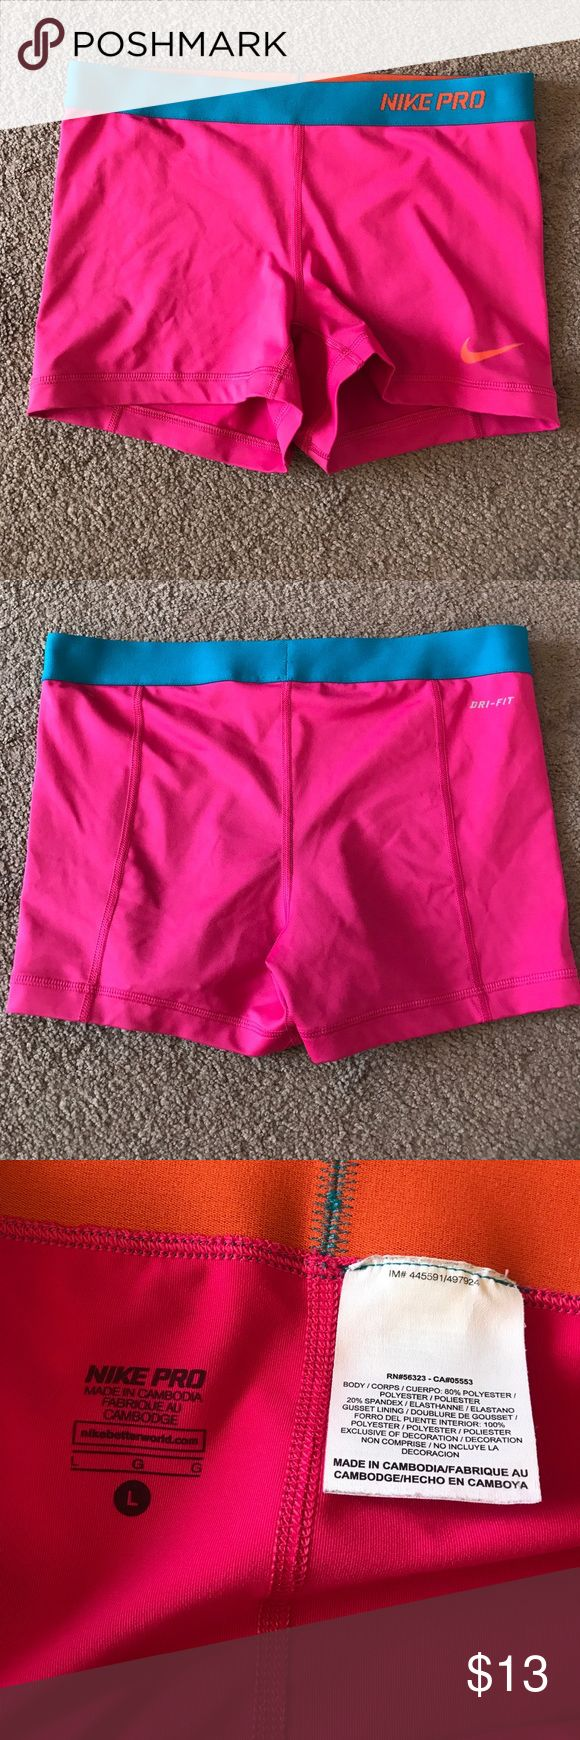 Women's Nike Pro Dri Fit Pink Shorts Size L Size large. Show normal wear. No major flaws. Nike Shorts